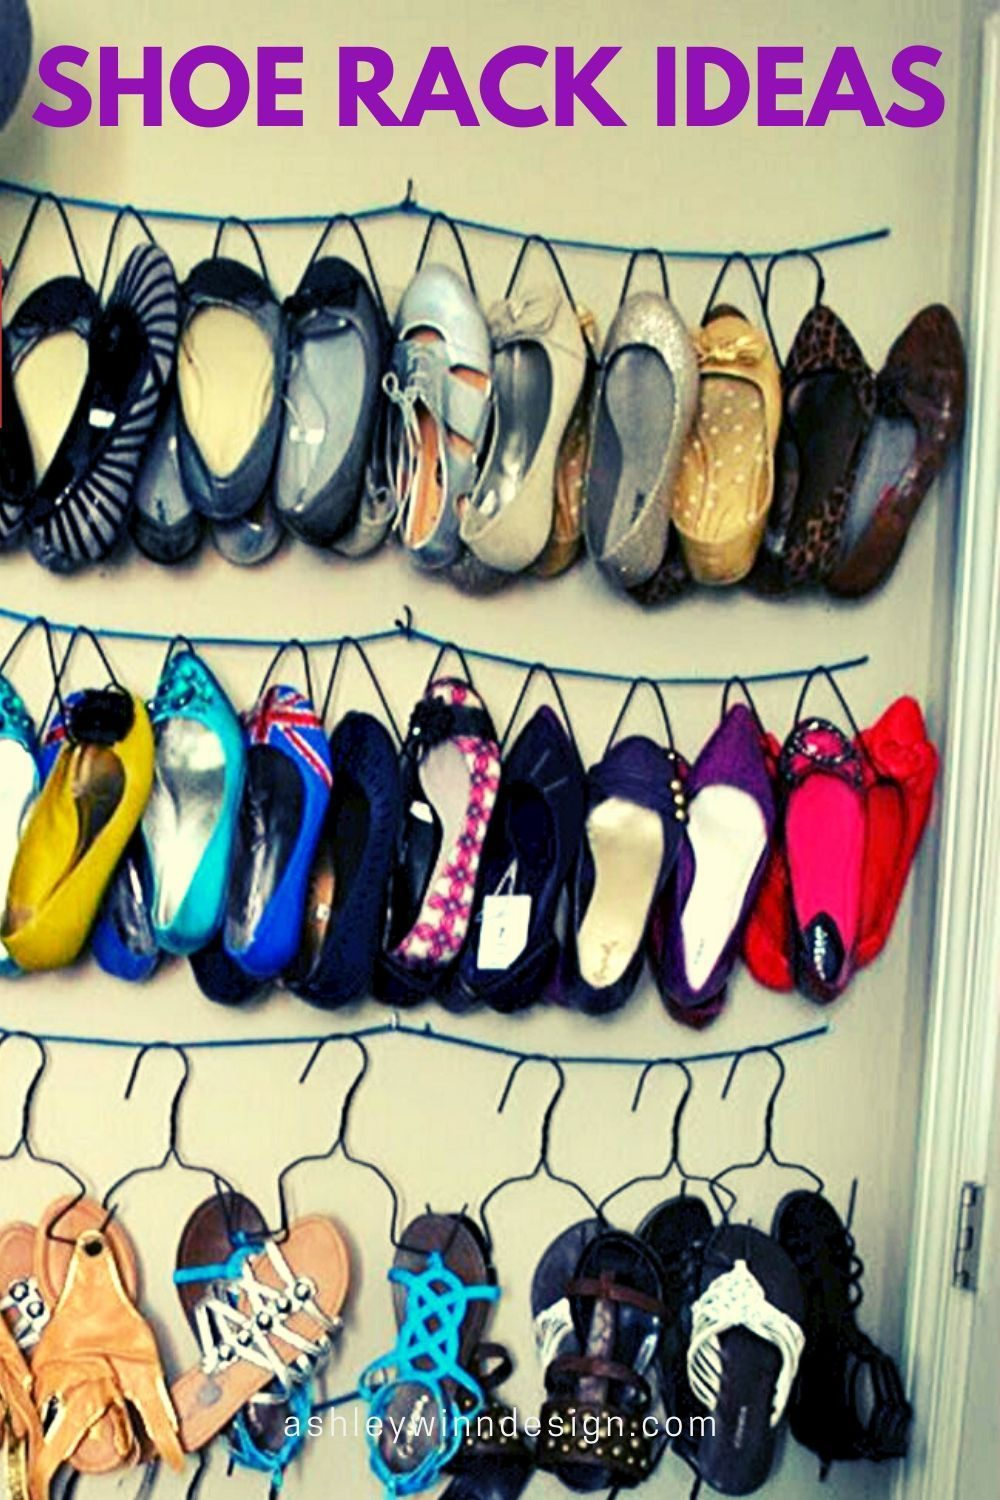 47 Awesome Shoe Rack Ideas In 2020 Concepts For Storing Your Shoes In 2020 Shoe Rack Outdoor Shoe Storage Entryway Shoe Storage